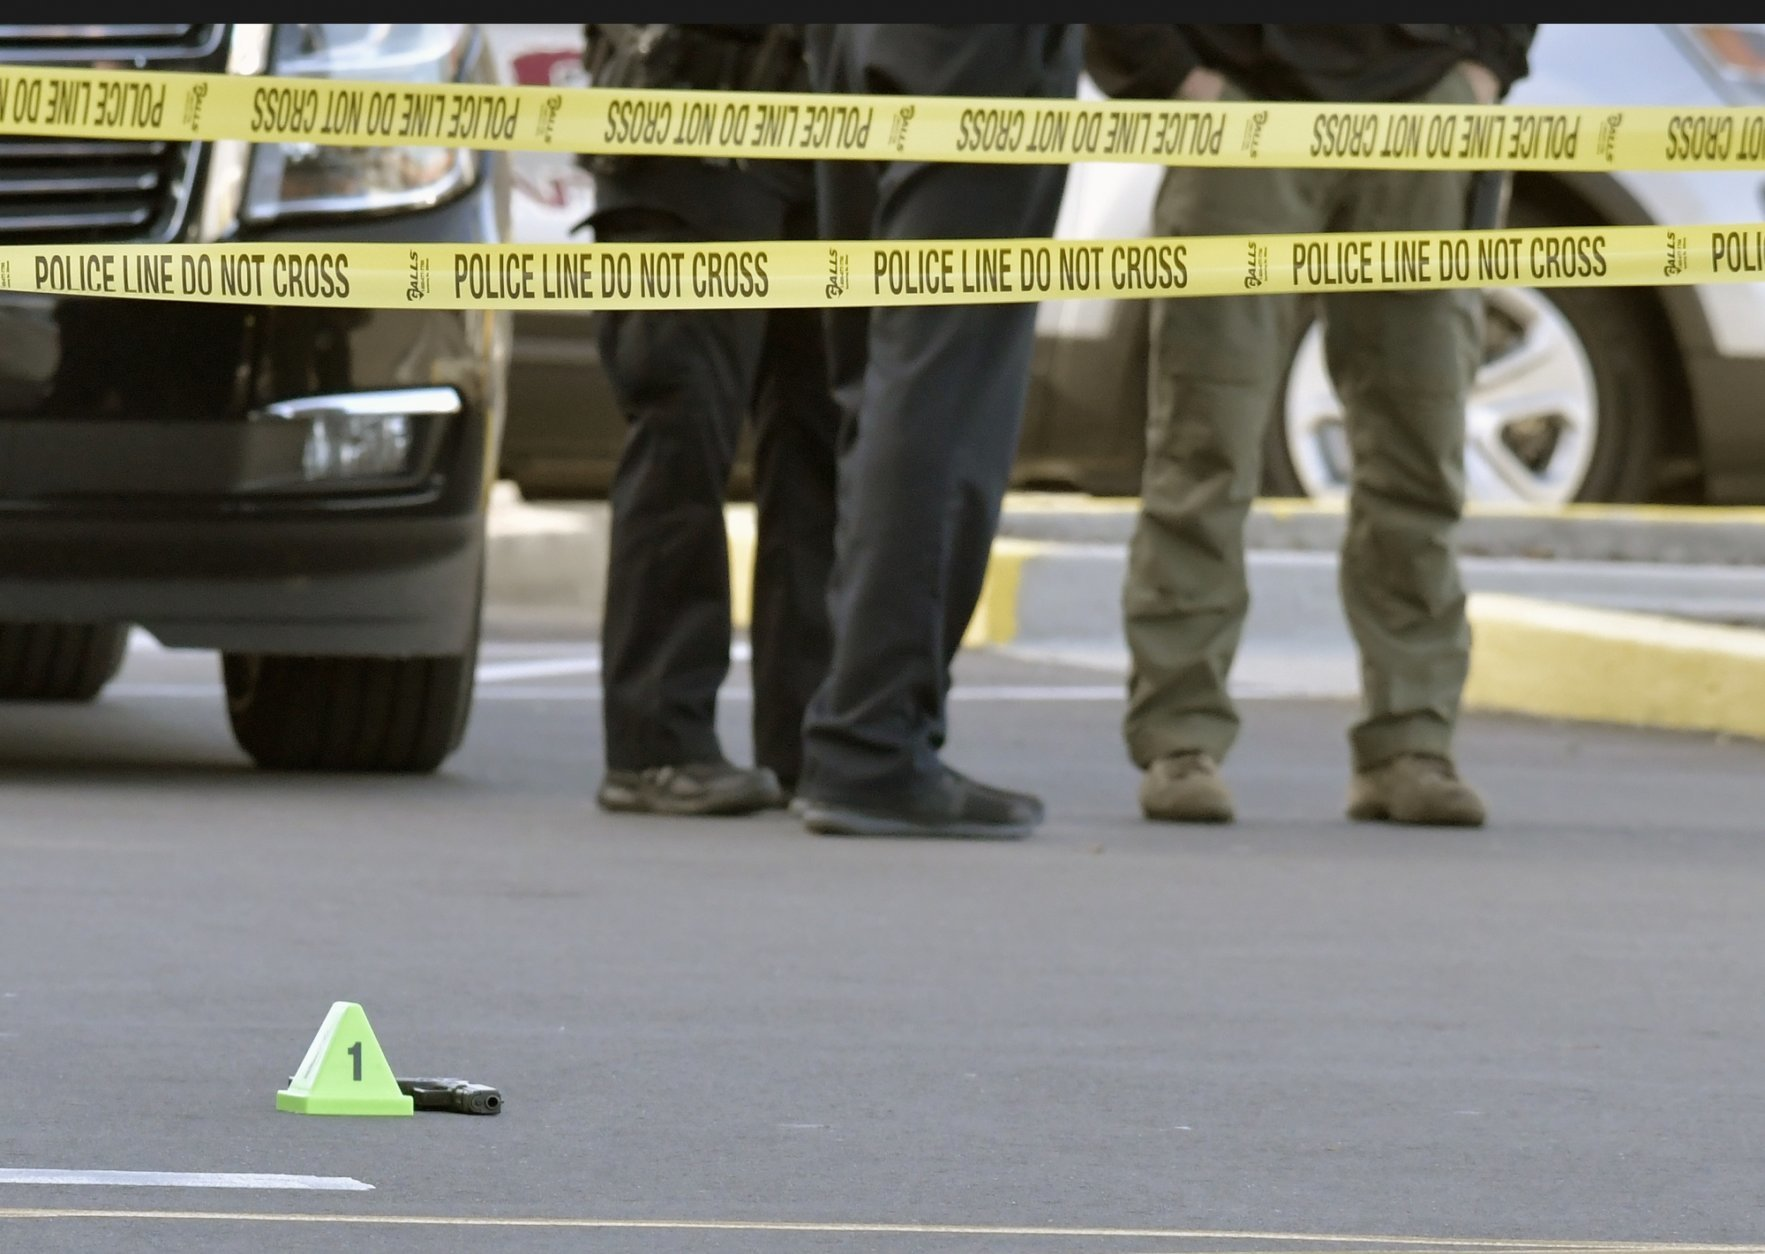 A gun lies on the ground inside a police barricade following a shooting at a Kroger grocery that left two people dead and a suspect in custody, Wednesday, Oct. 24, 2018, in Jeffersontown, Ky.  A male suspect fatally shot a man and a woman at a Kroger grocery store on the outskirts of Louisville, Kentucky, and then exchanged fire with an armed bystander before fleeing the scene, police said. He was captured shortly afterward. (AP Photo/Timothy D. Easley)